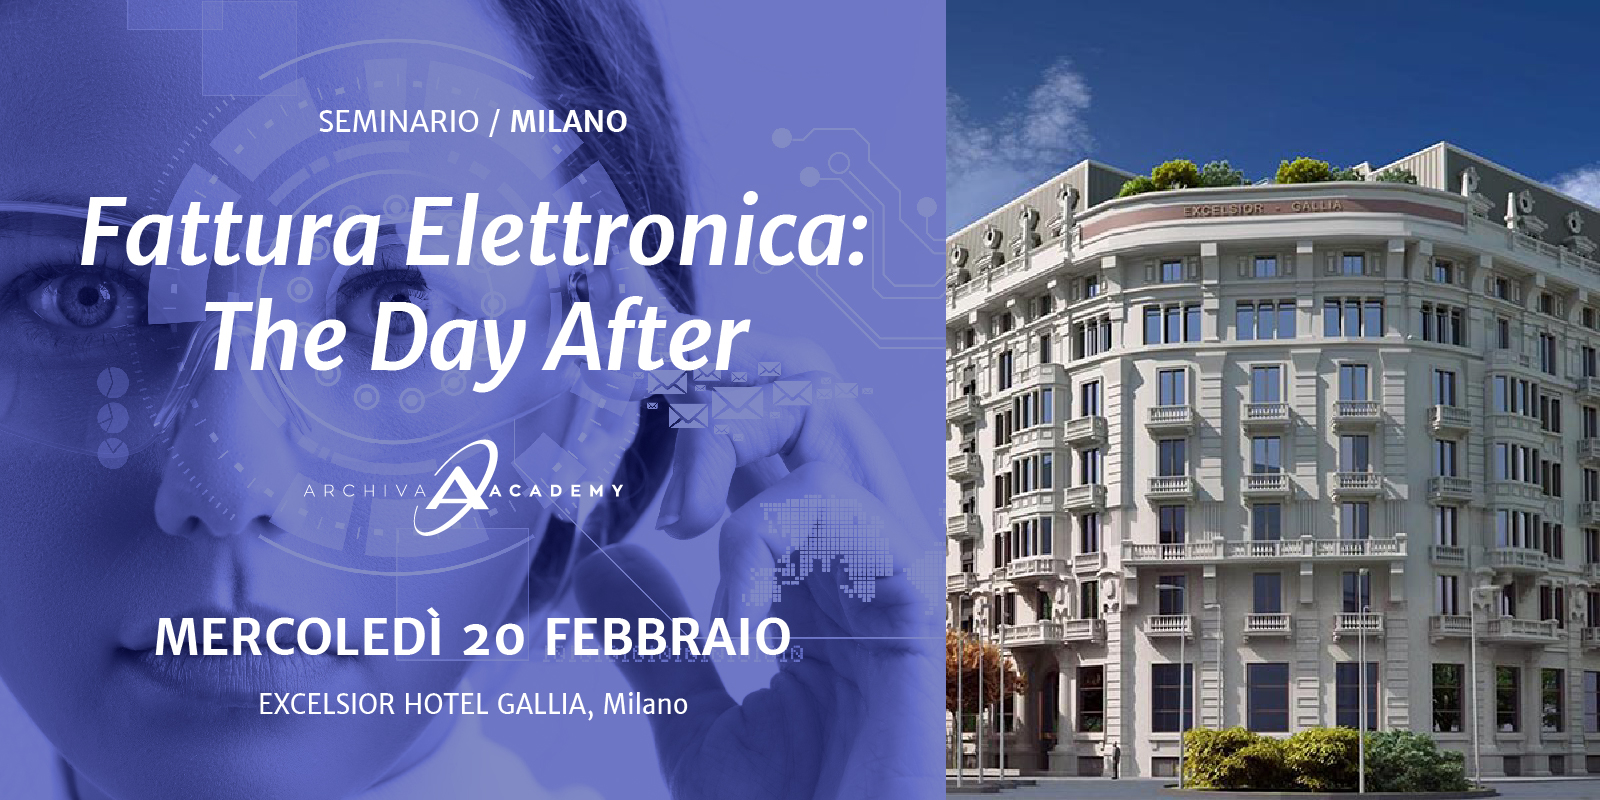 SEMINARIO - Fattura elettronica: the day after